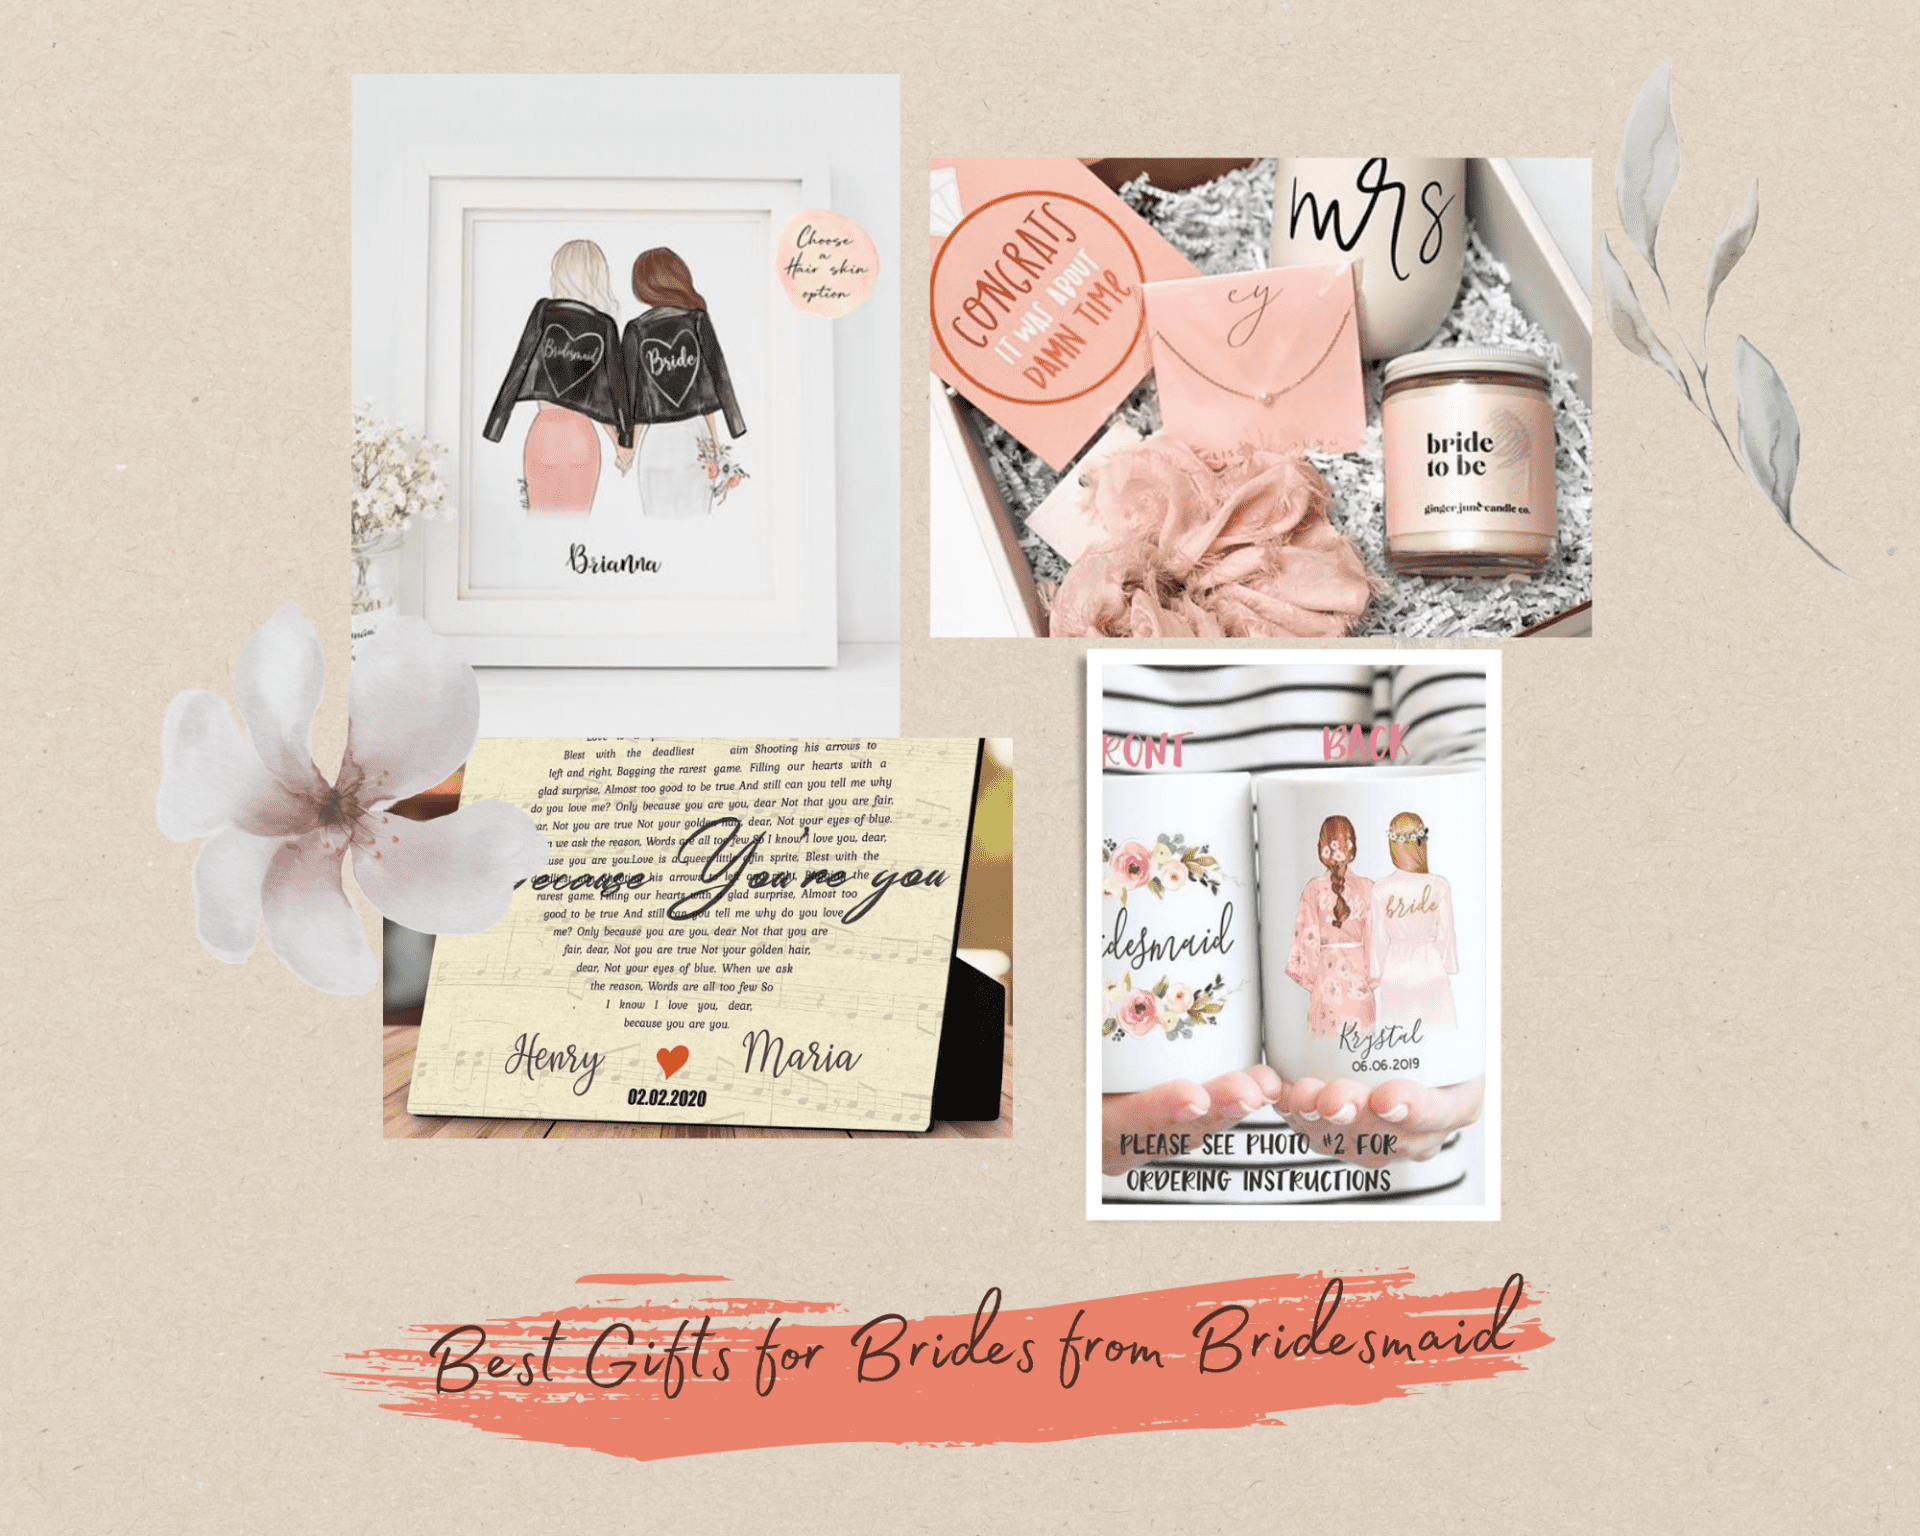 20+ Best Gifts for Brides from Bridesmaid